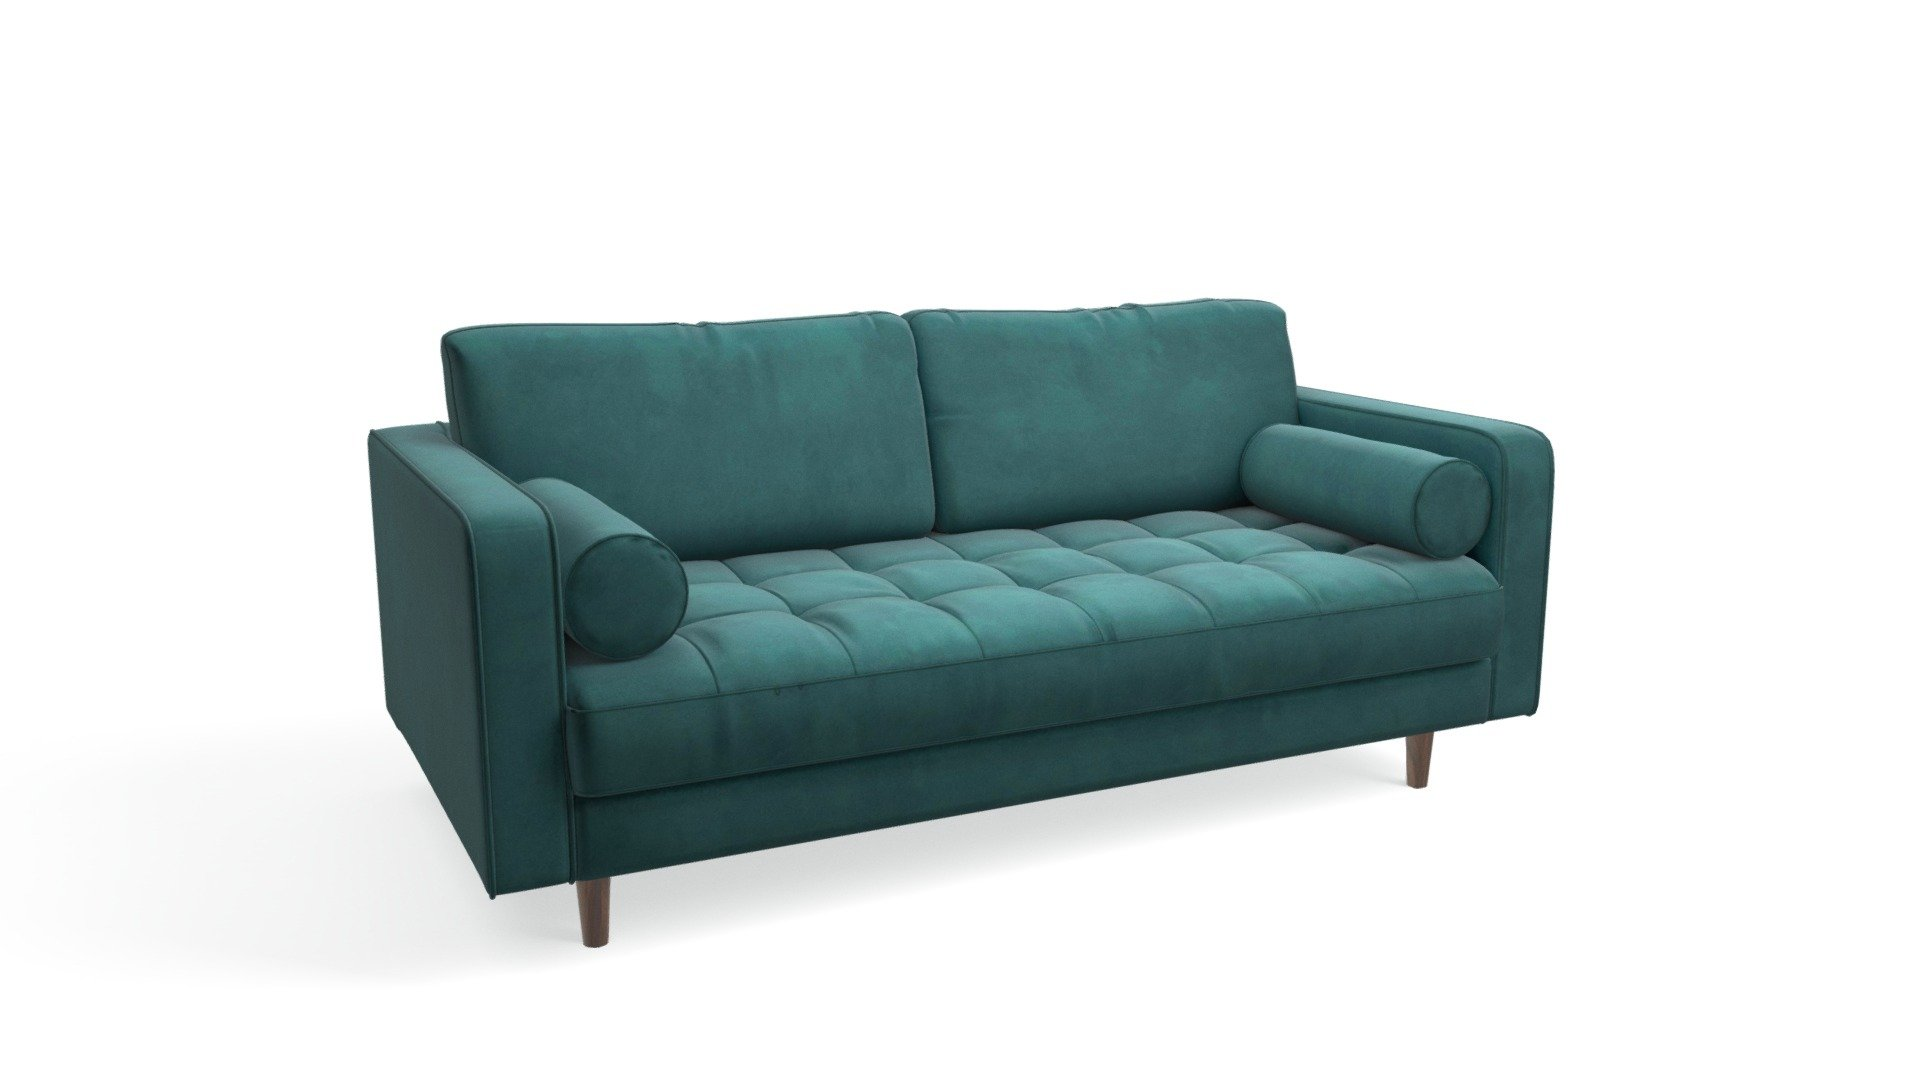 Sofa Petrol Scott 2 Seater Sofa, Petrol Cotton Velvet - Download Free 3d Model By Made.com (@made-it) [c823fc7] - Sketchfab